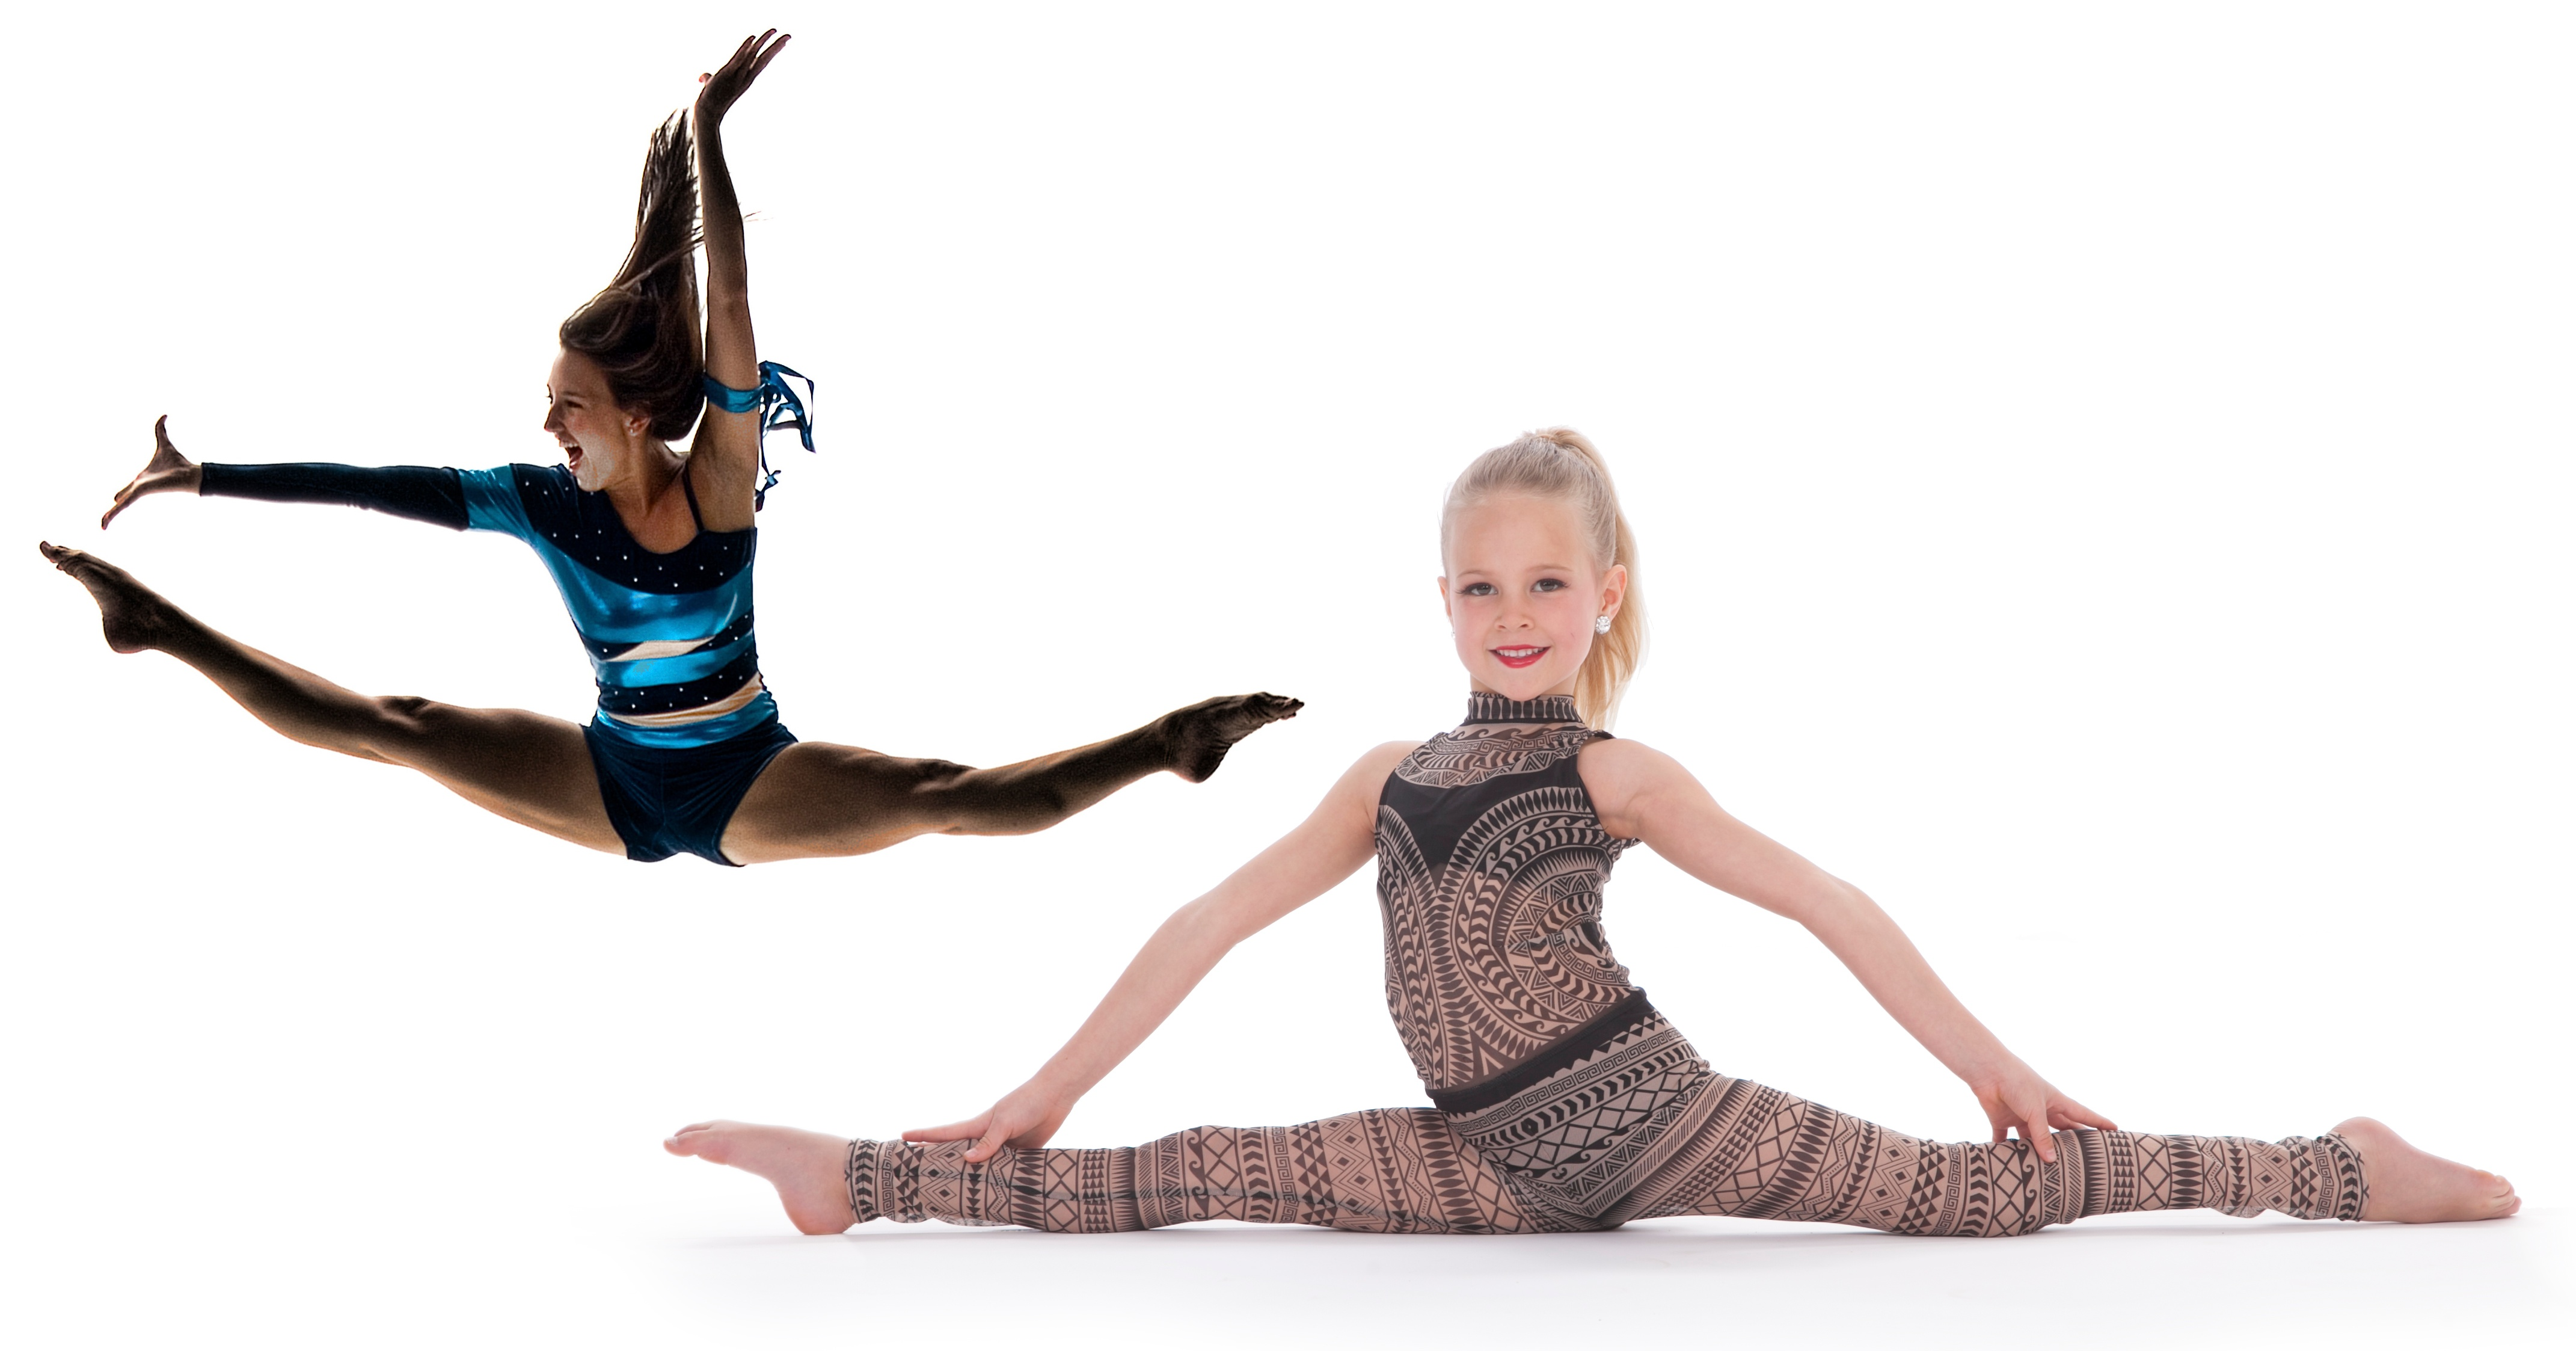 Dance costume pictures